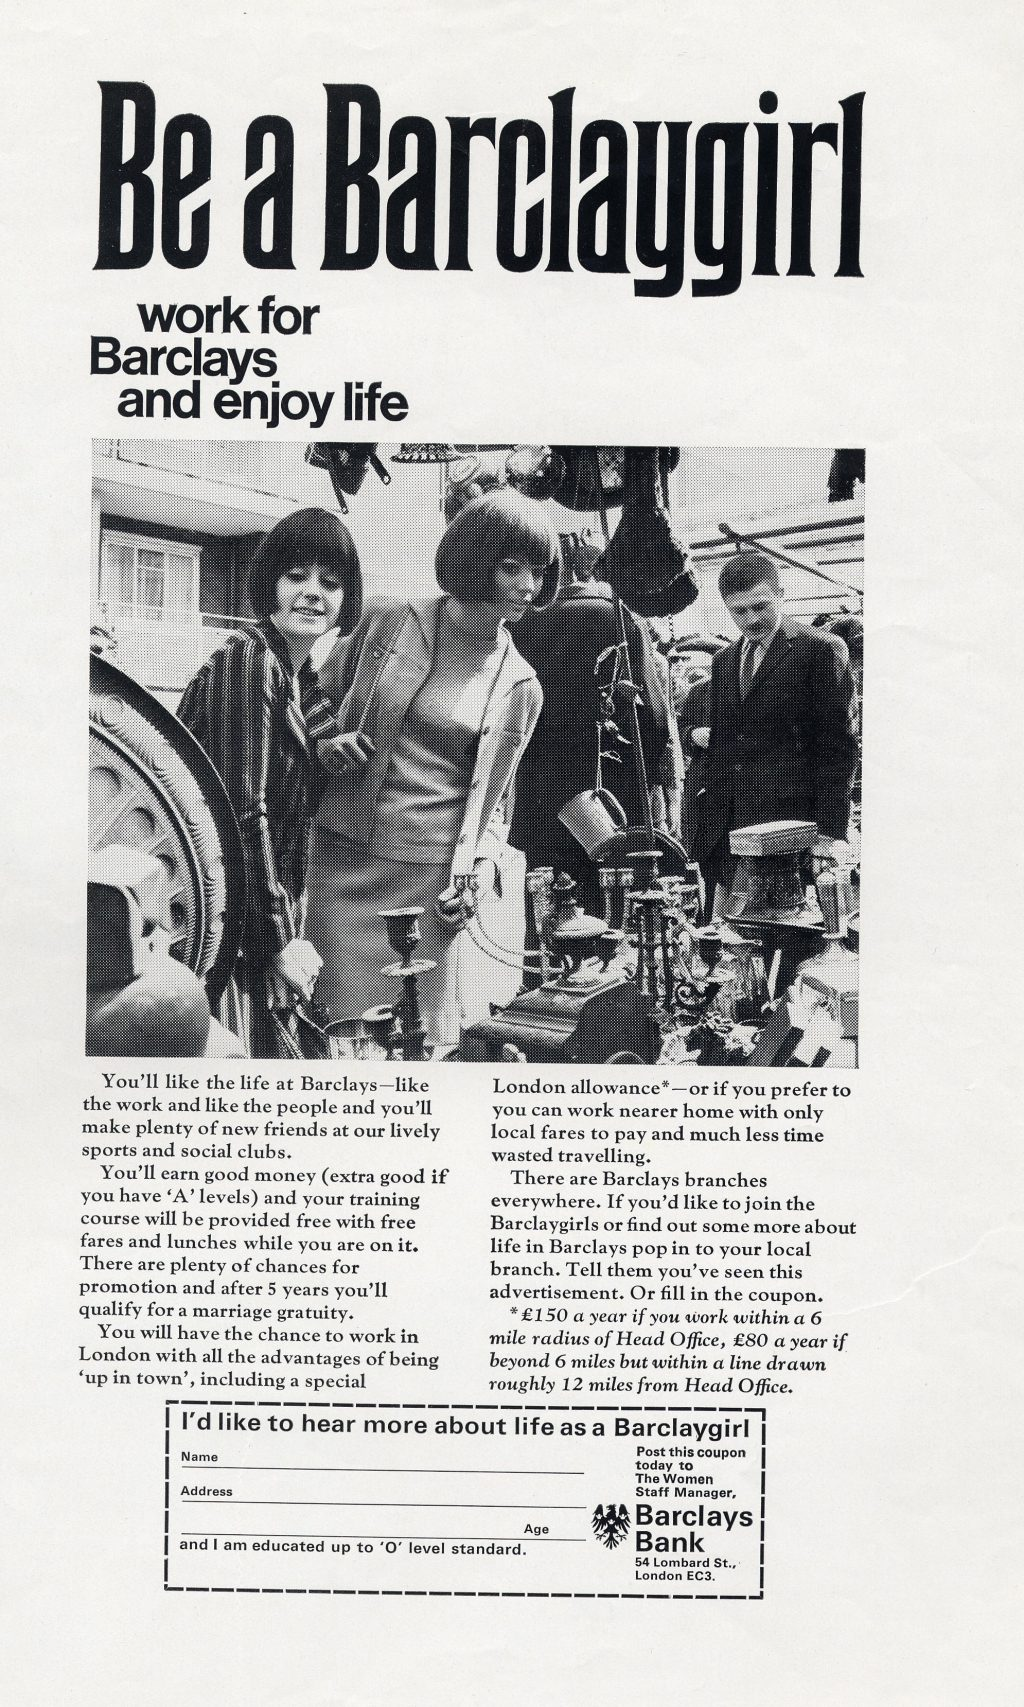 1967: Be A Barclaygirl